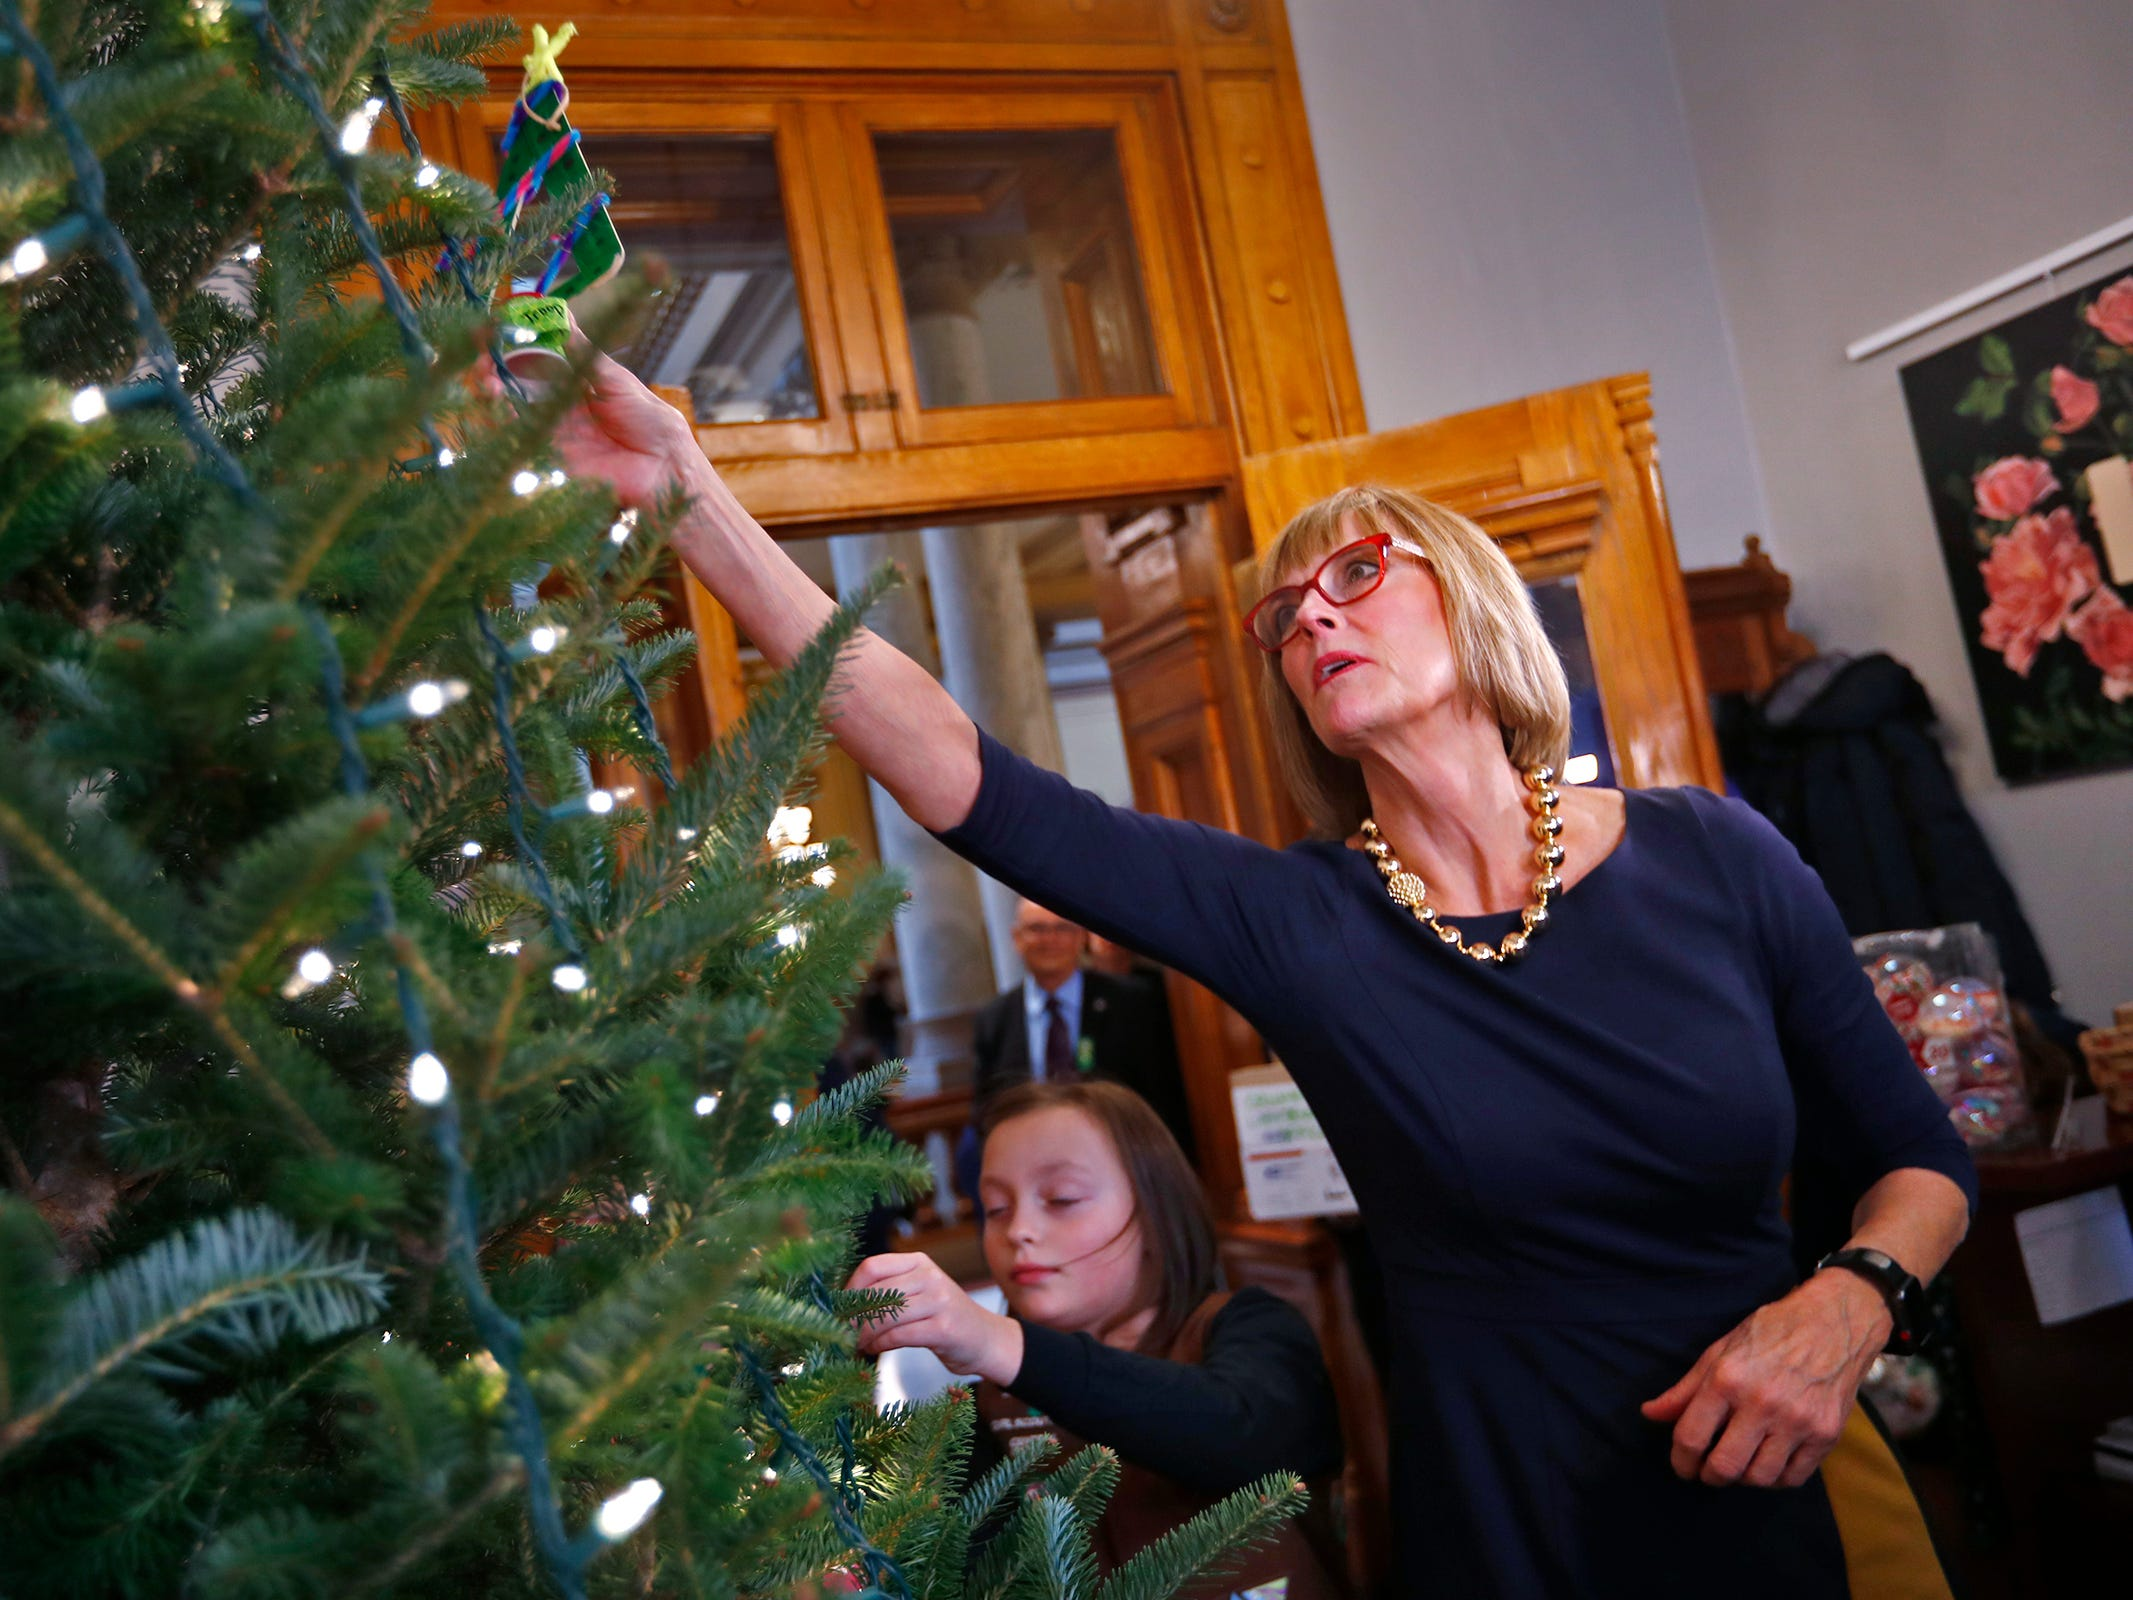 Colette Pardo, left, and other Brownies join Lieutenant Governor Suzanne Crouch, right, to decorate her Indiana Statehouse tree for the holidays, Wednesday, Dec. 5, 2018.  They used ornaments created by Girl Scouts from across Central Indiana for the tree.